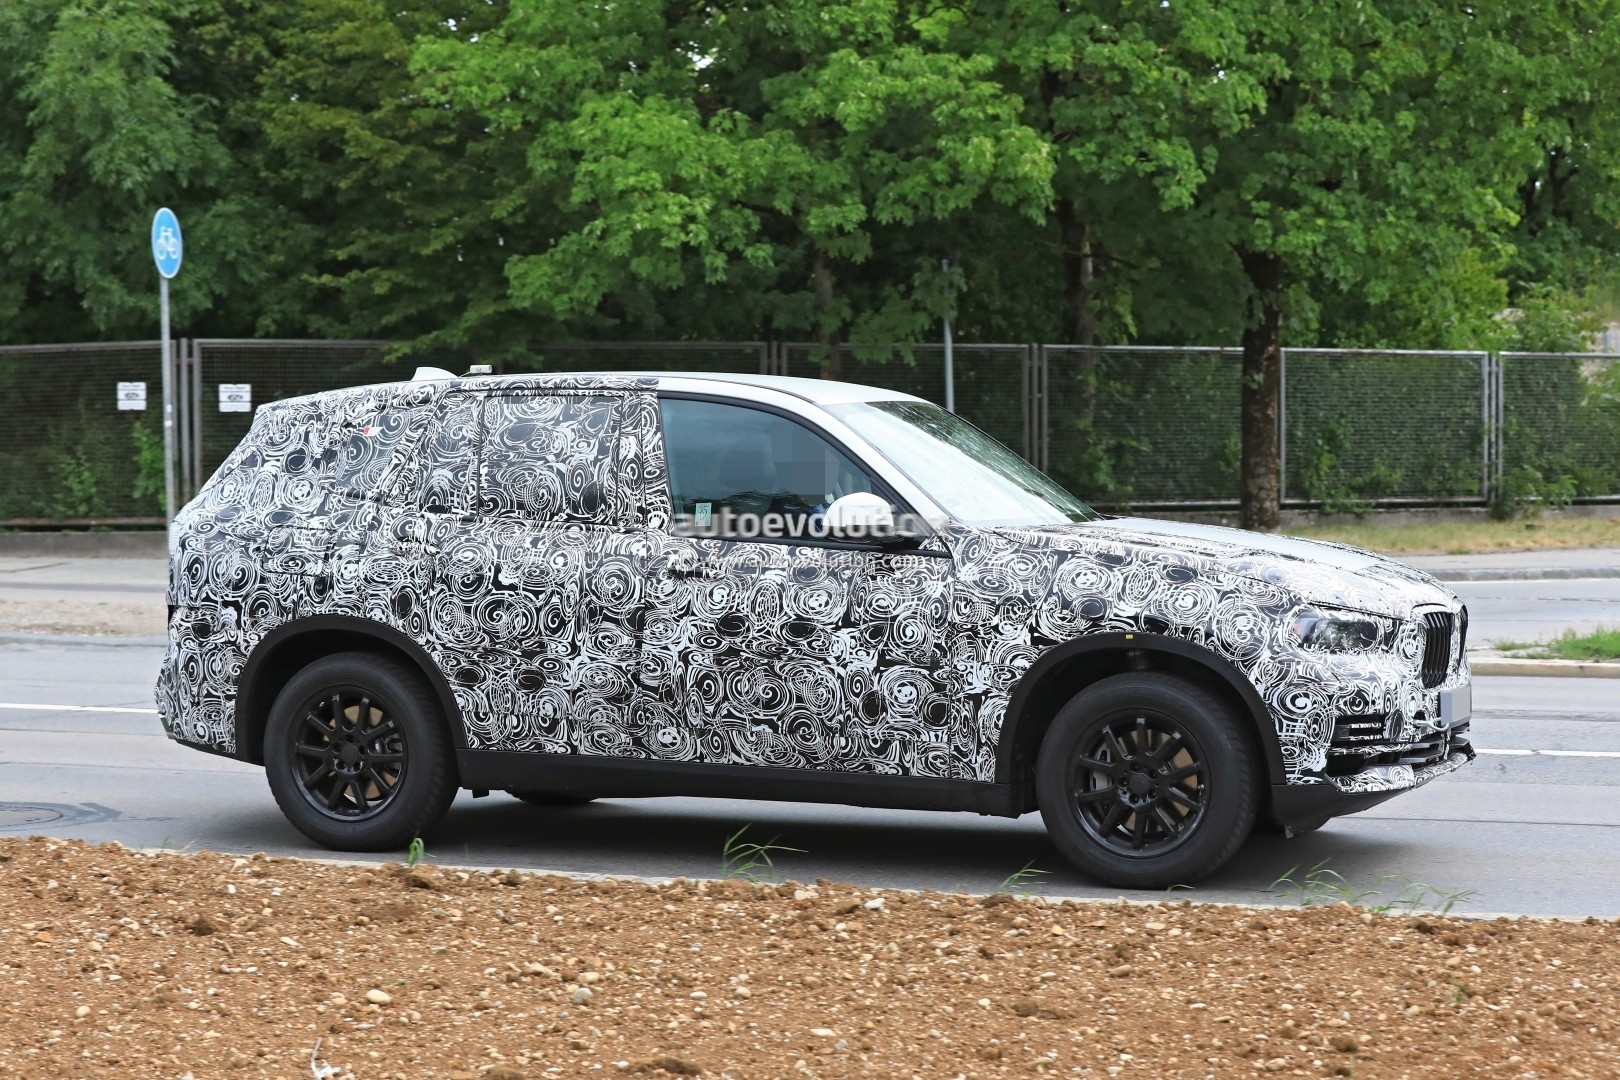 2019-bmw-x5-spied-prototype-reveals-new-angular-design-front-air-intakes_5